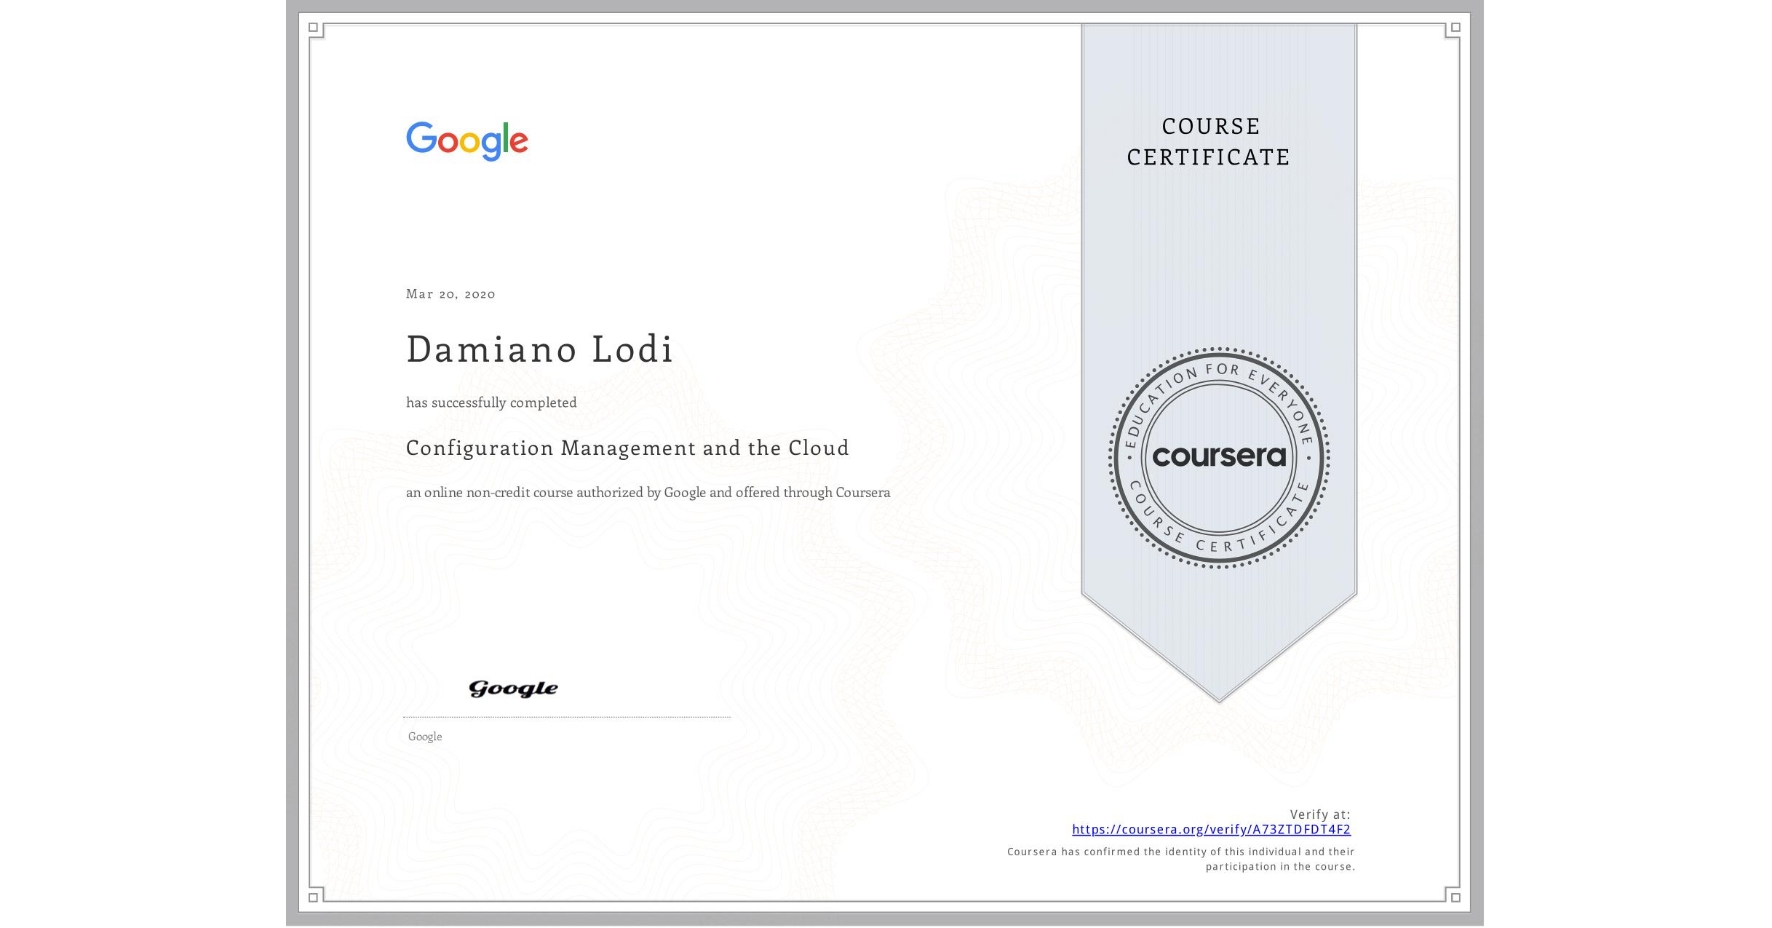 View certificate for Damiano Lodi, Configuration Management and the Cloud, an online non-credit course authorized by Google and offered through Coursera